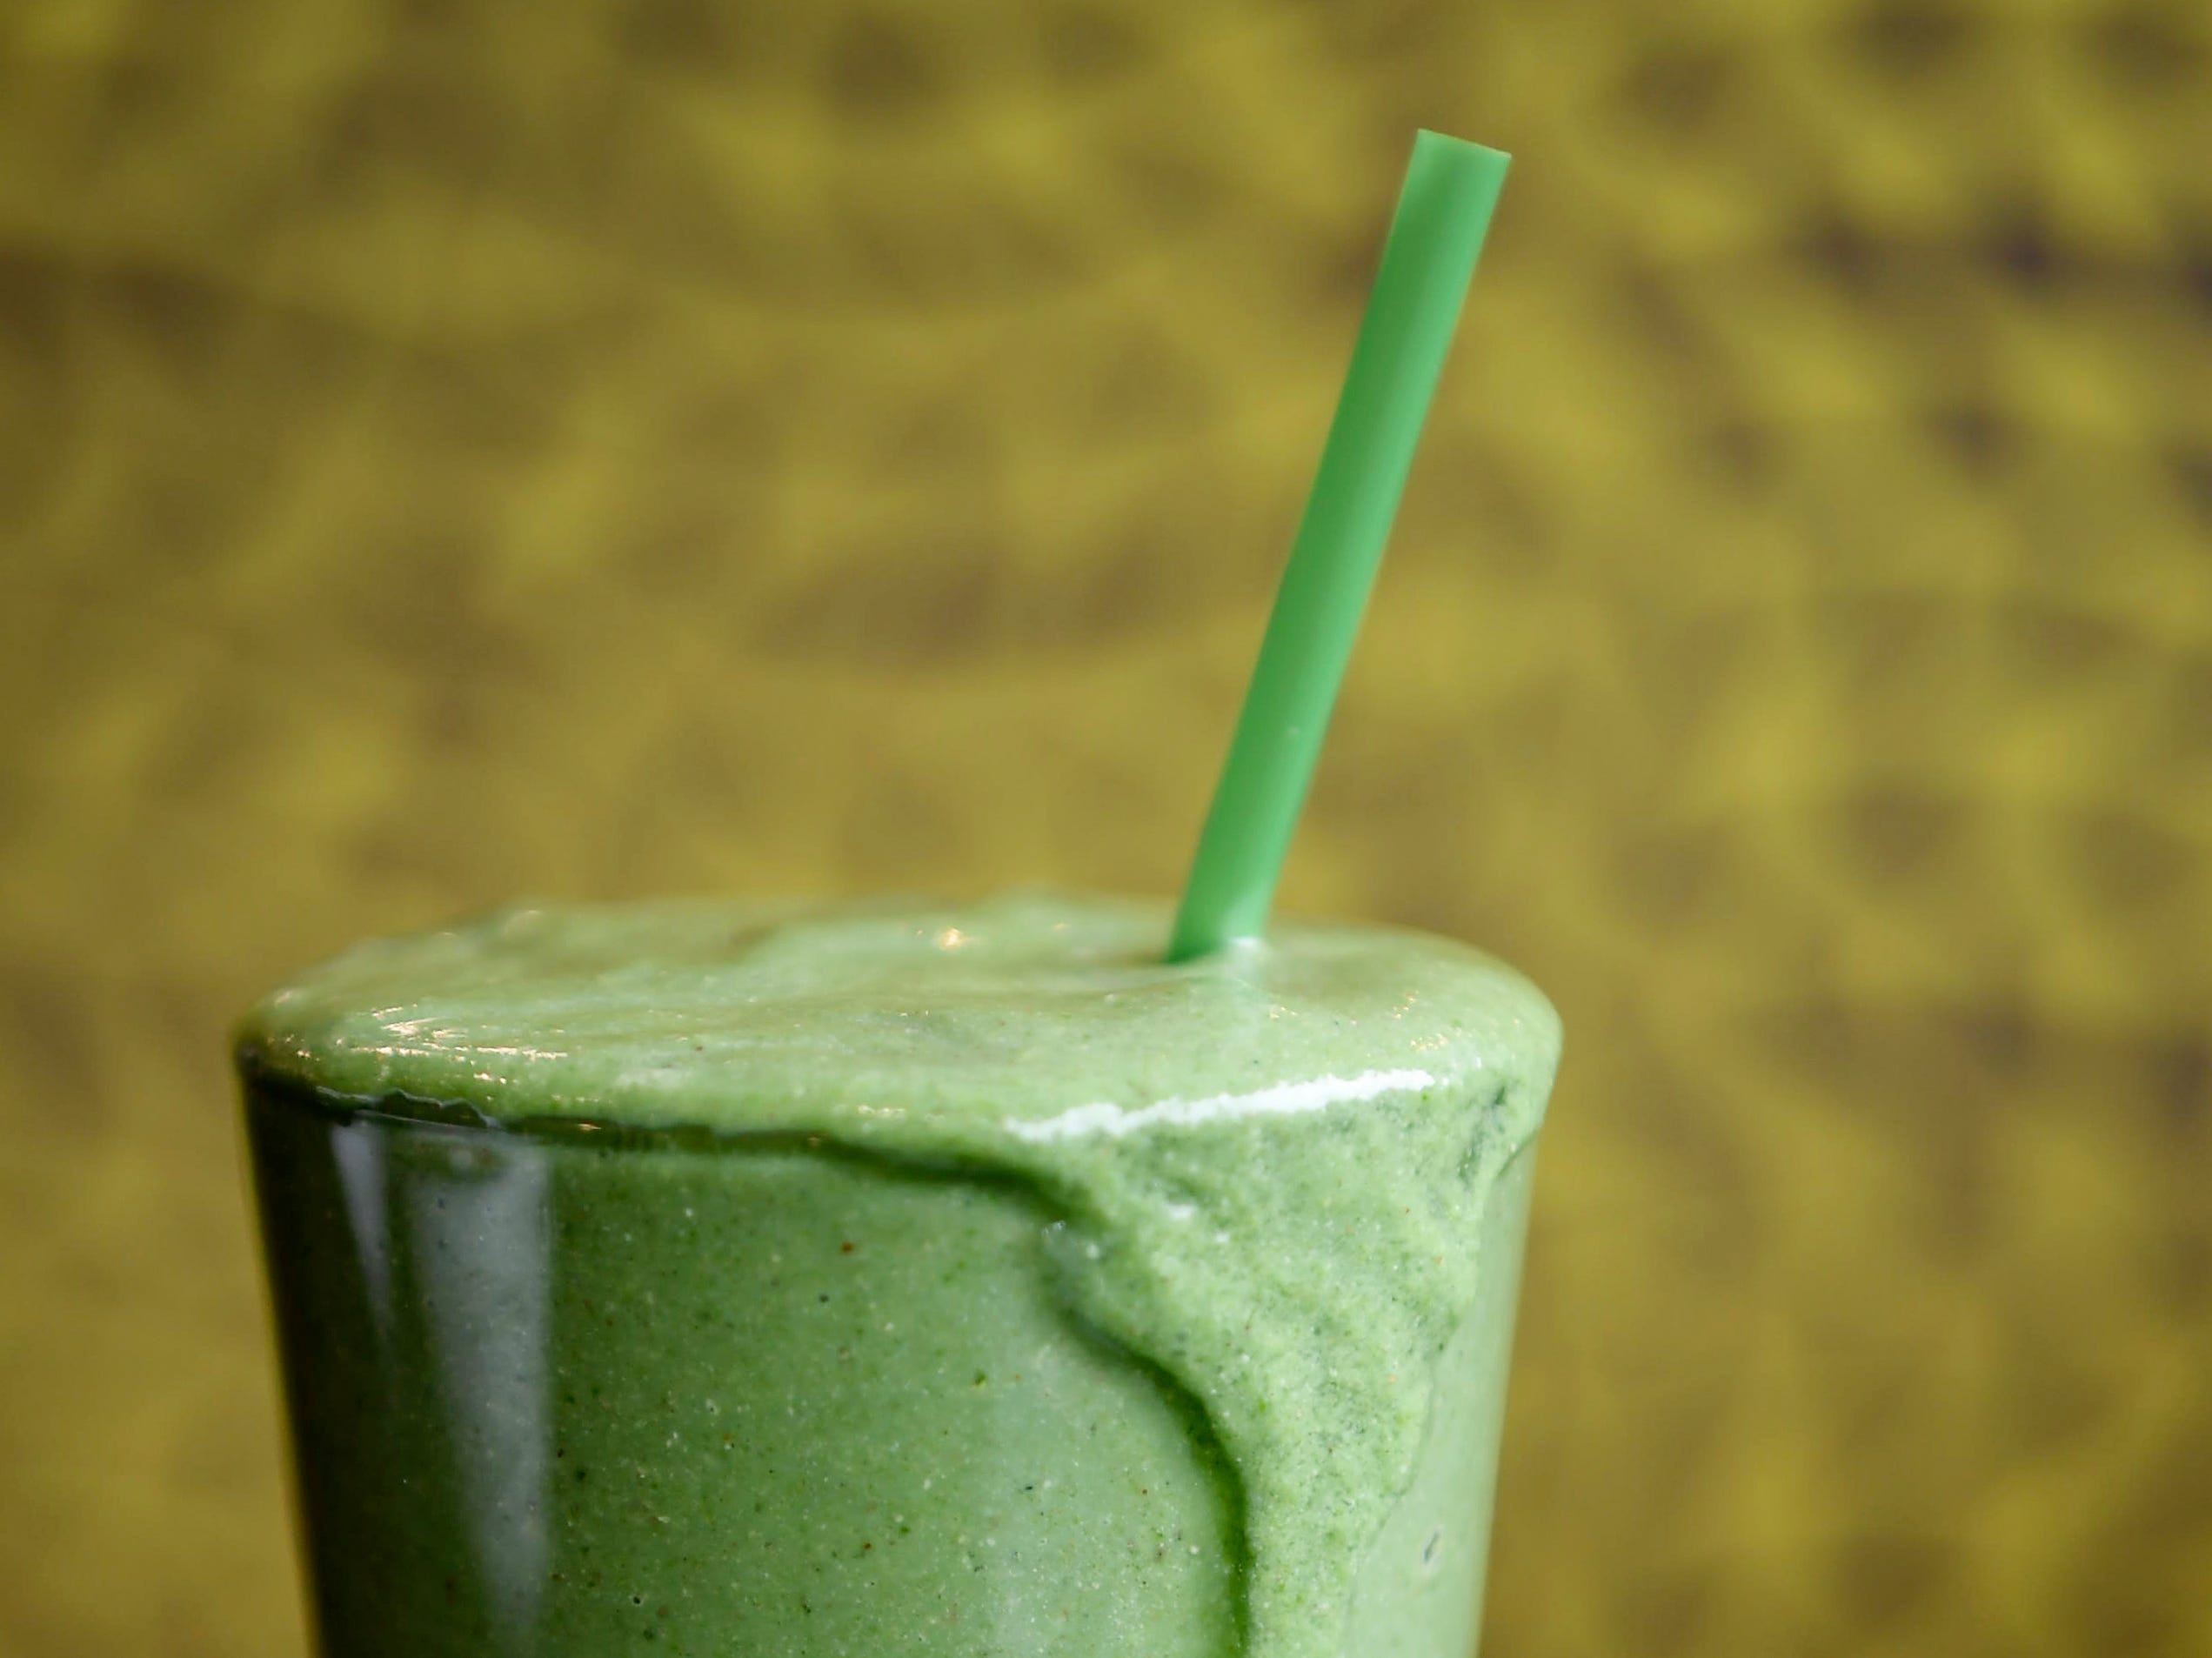 Green Sage's Green Day smoothie is made with banana, avocado, spinach, kale, dates, almond butter,chia seeds, spirulina, and almond milk.